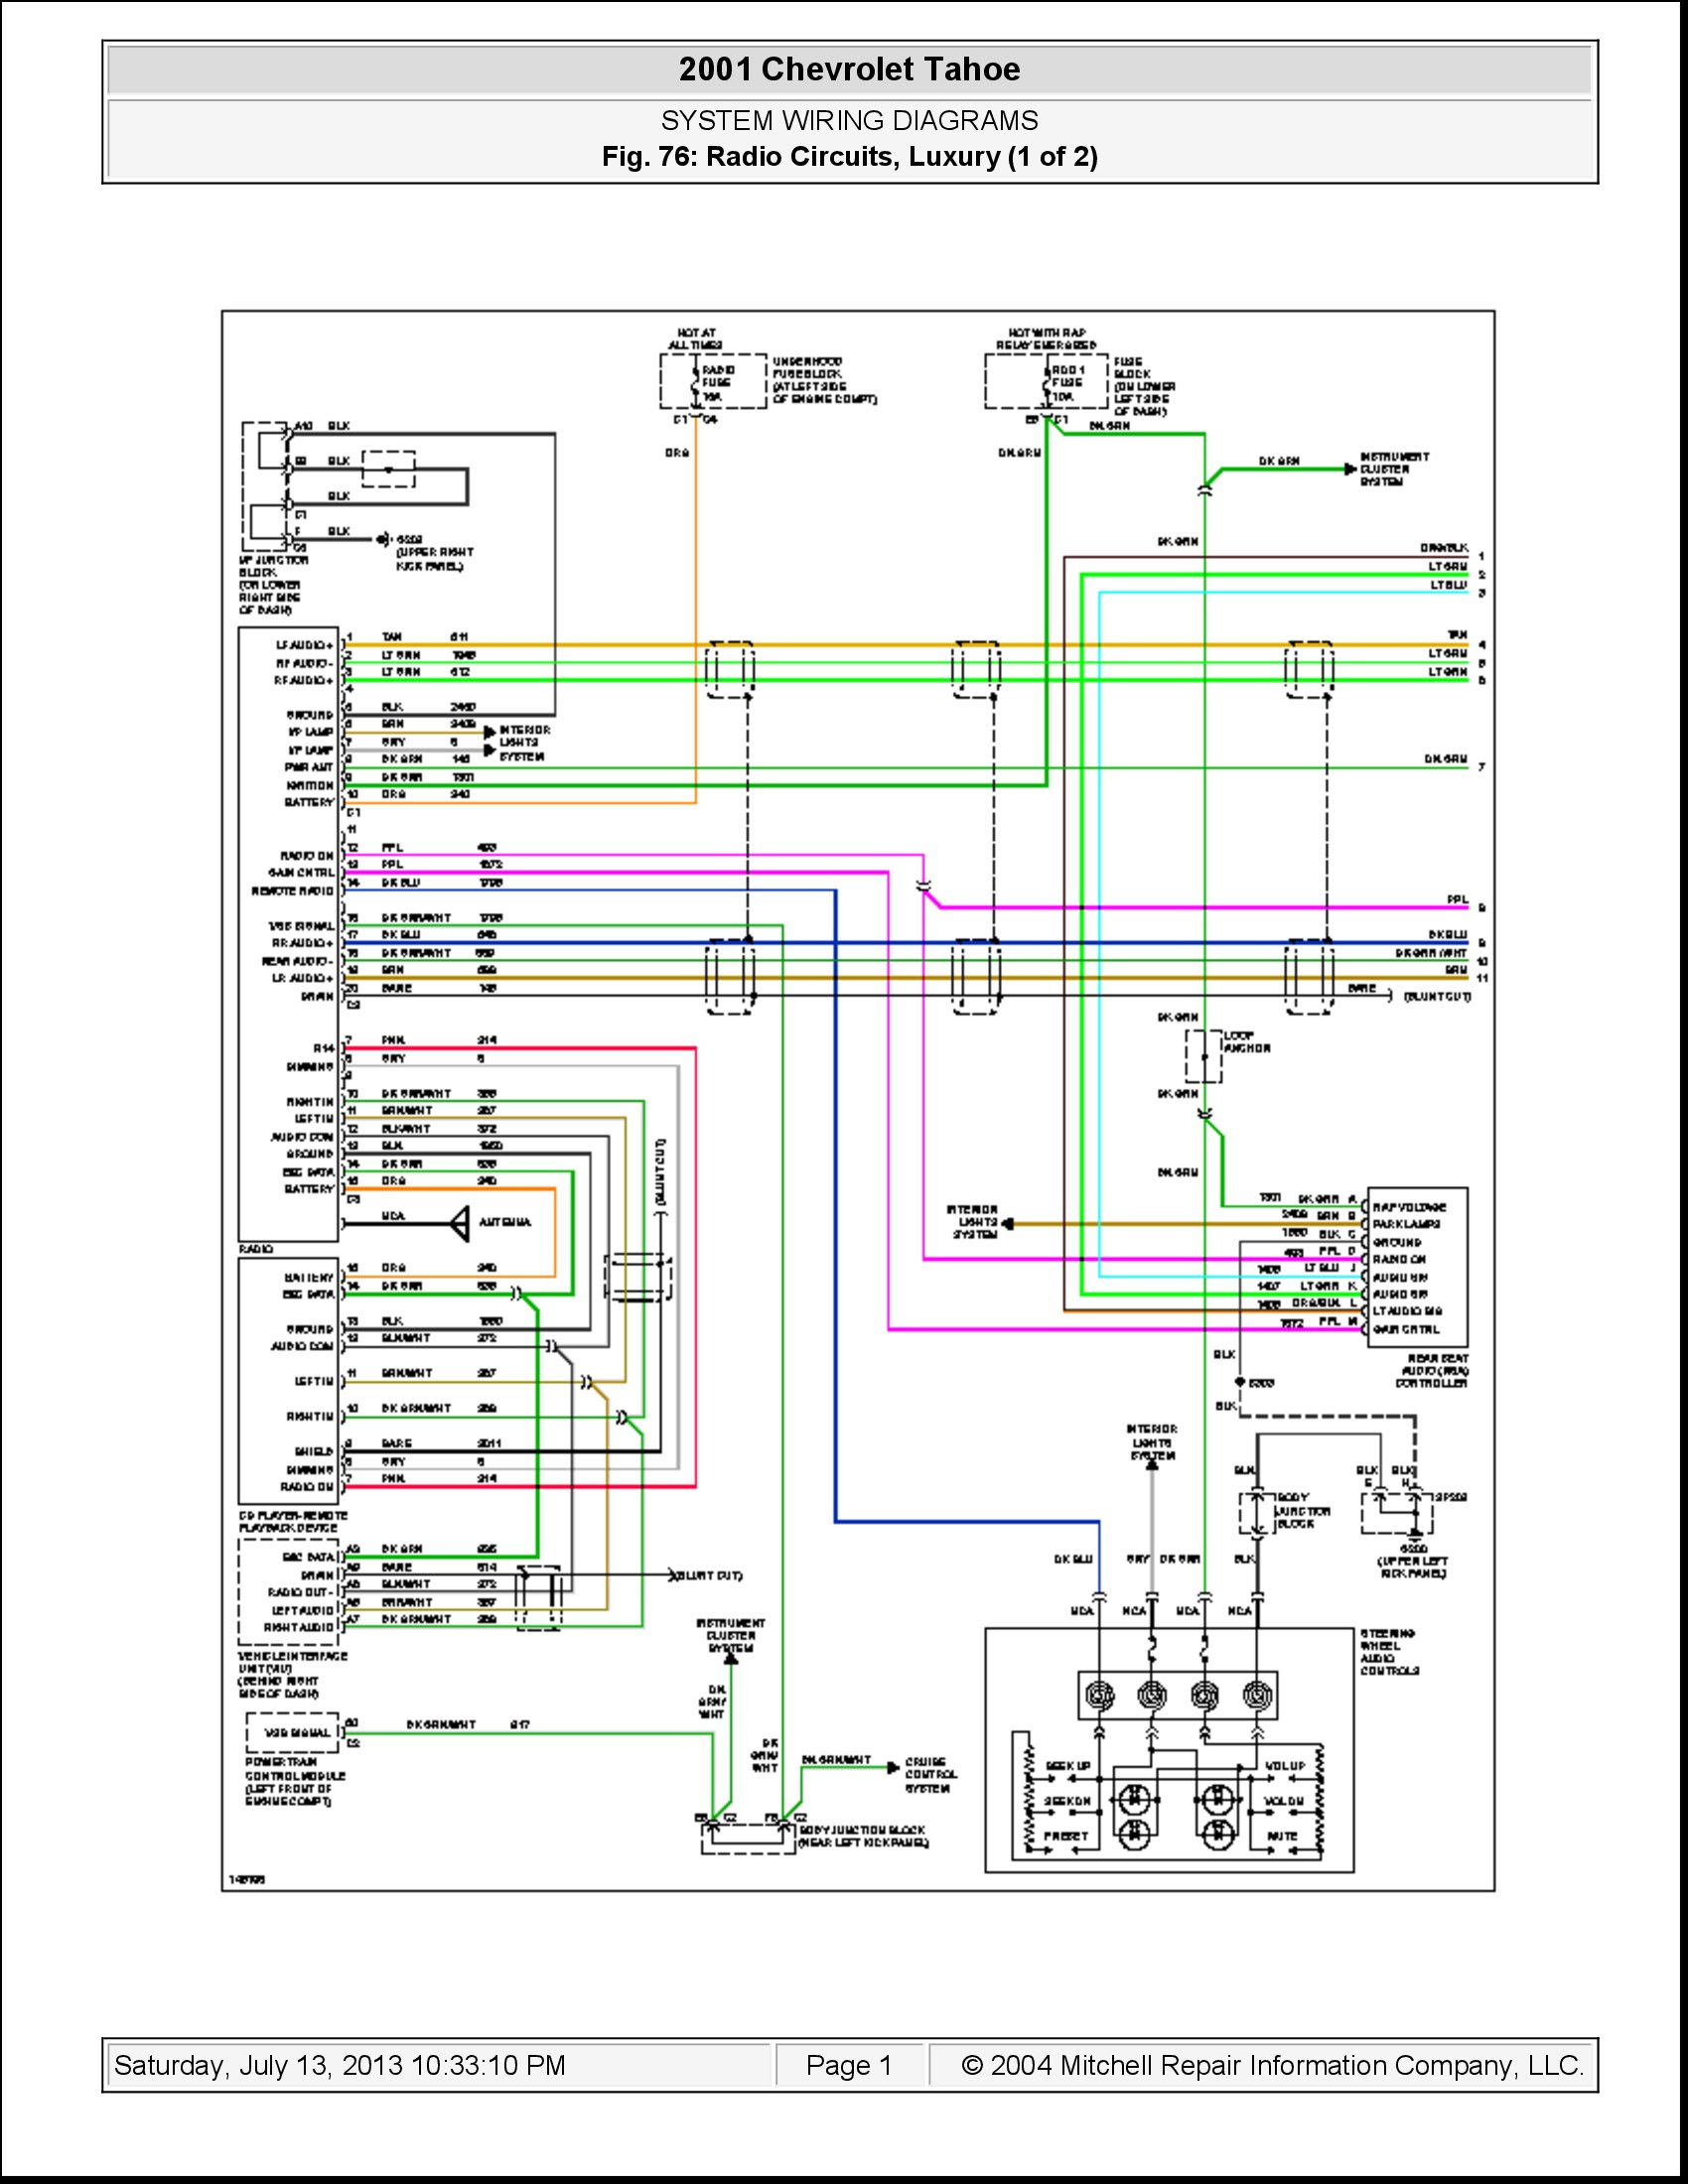 2013 Chevy Impala Ac Wiring Diagram Wiring Diagram Integrated Integrated Valhallarestaurant It